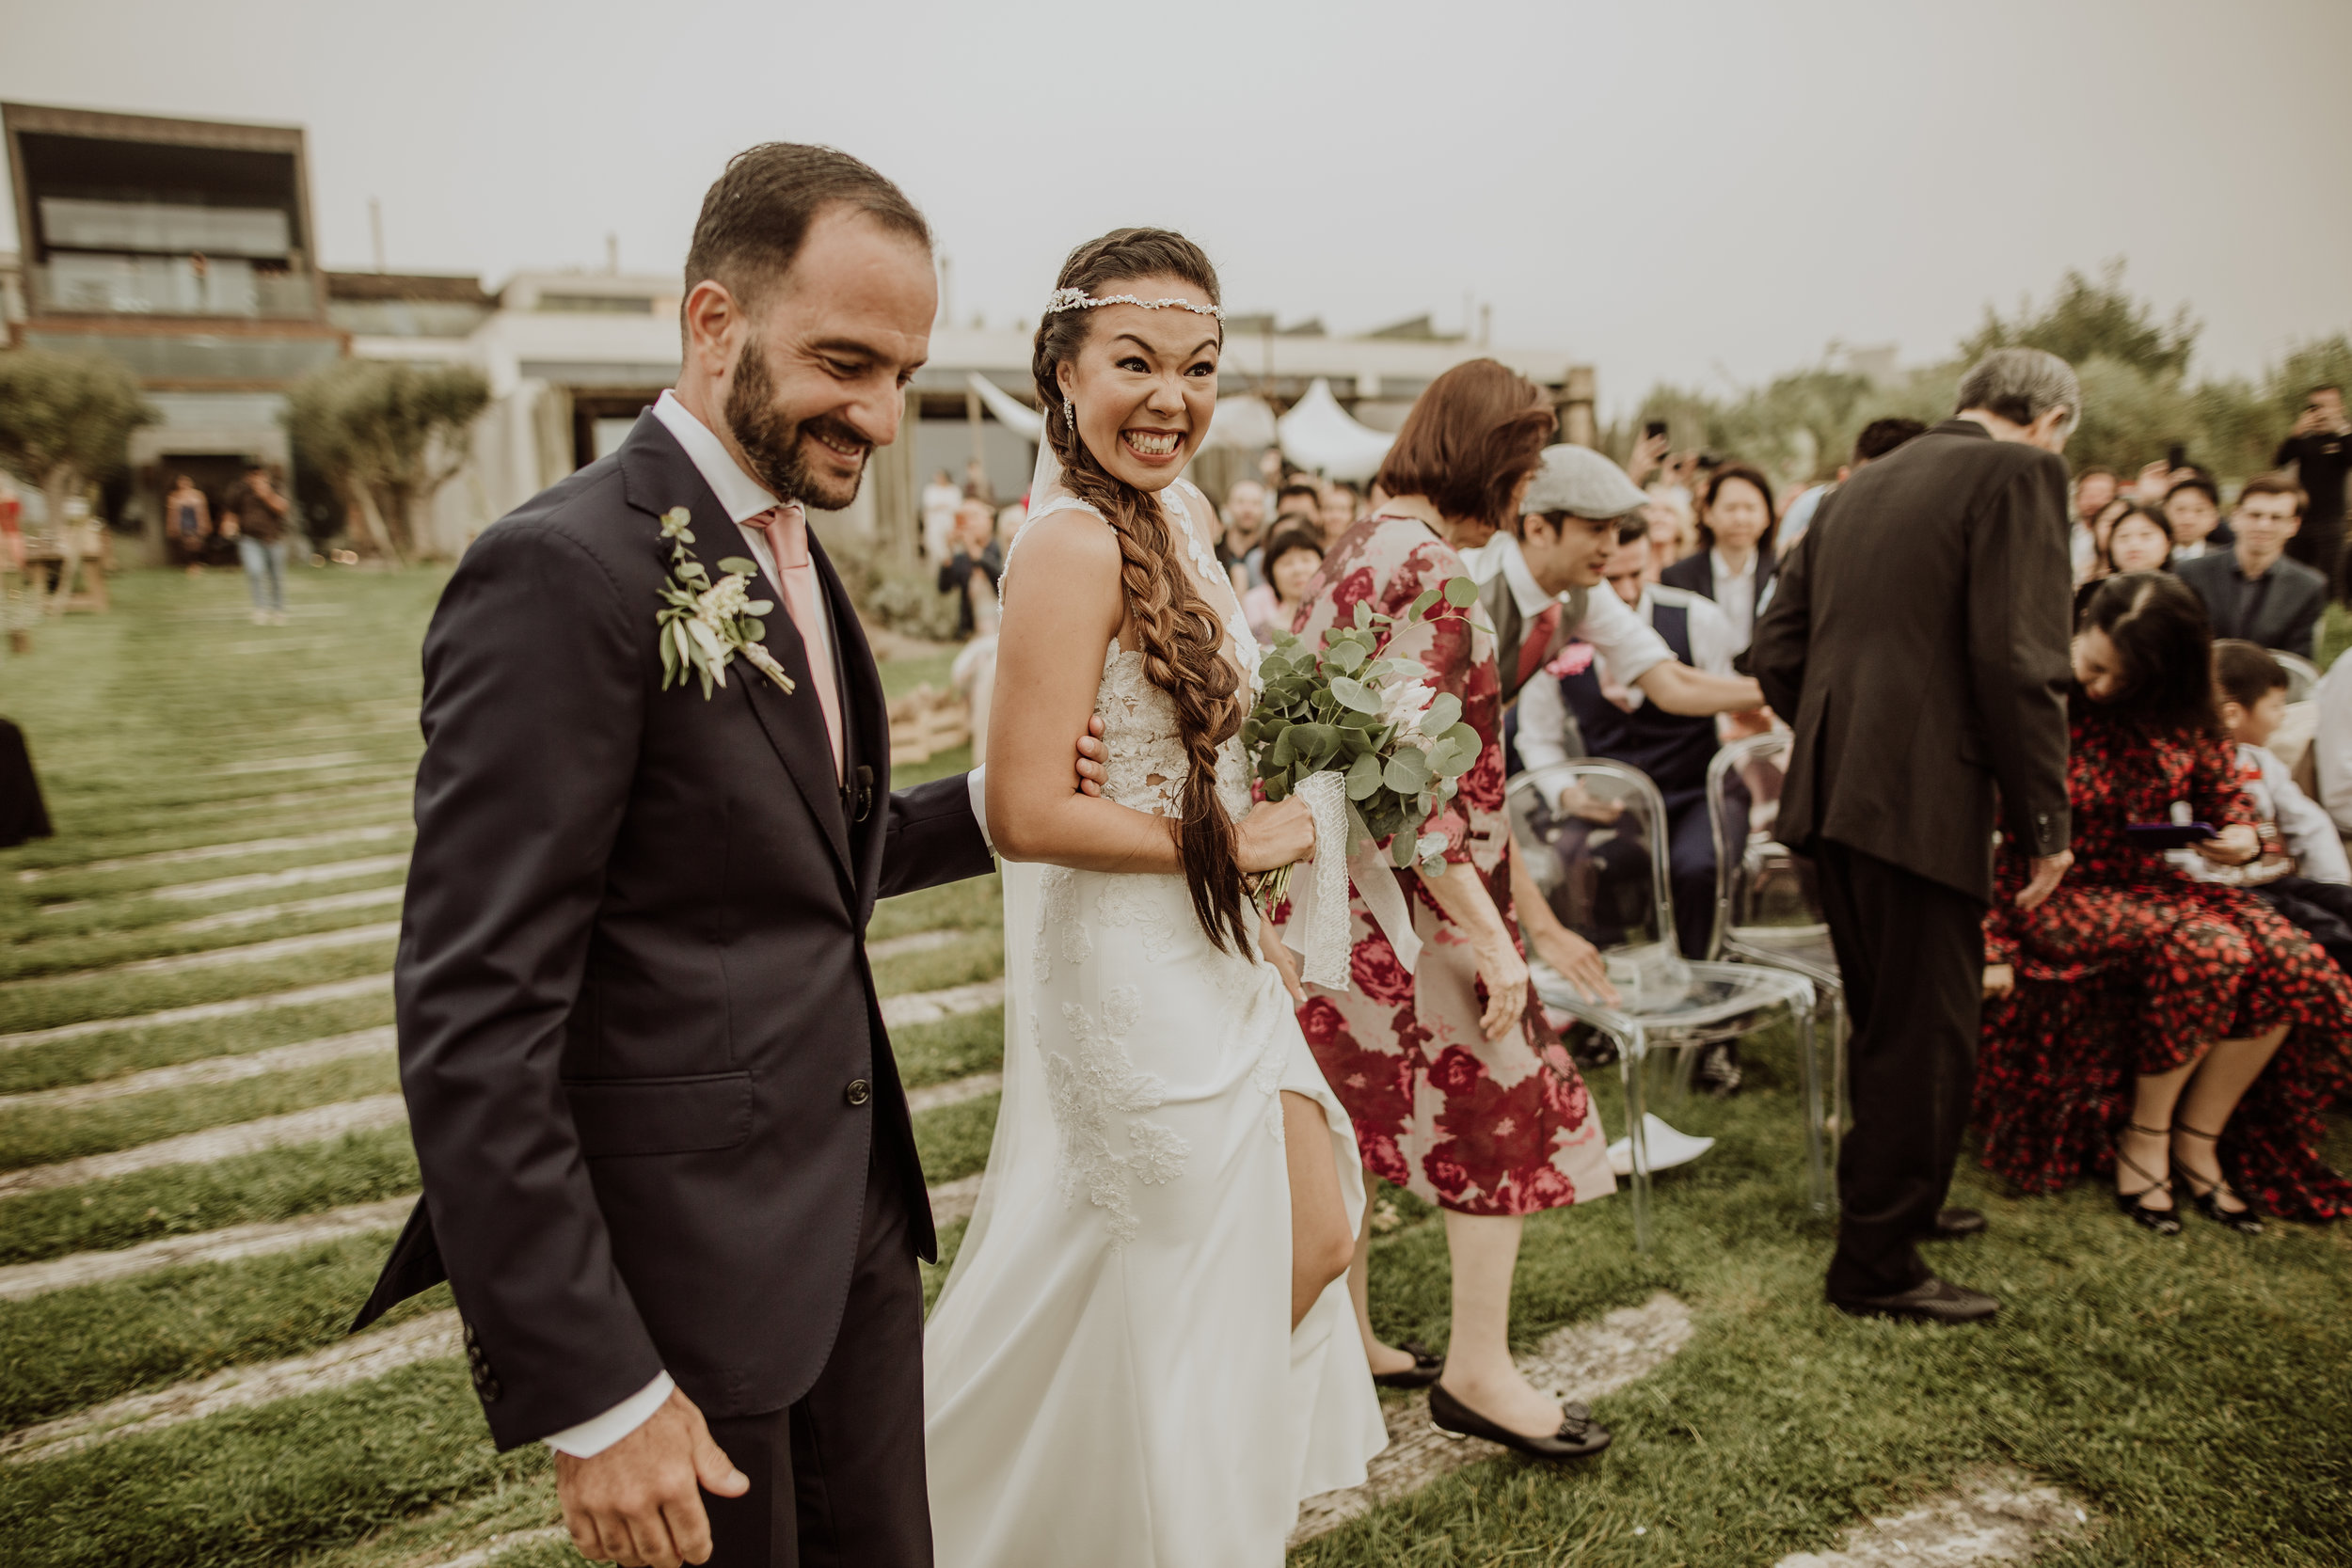 Y&M_634_15_September_2018WEDDING_DAY.jpg